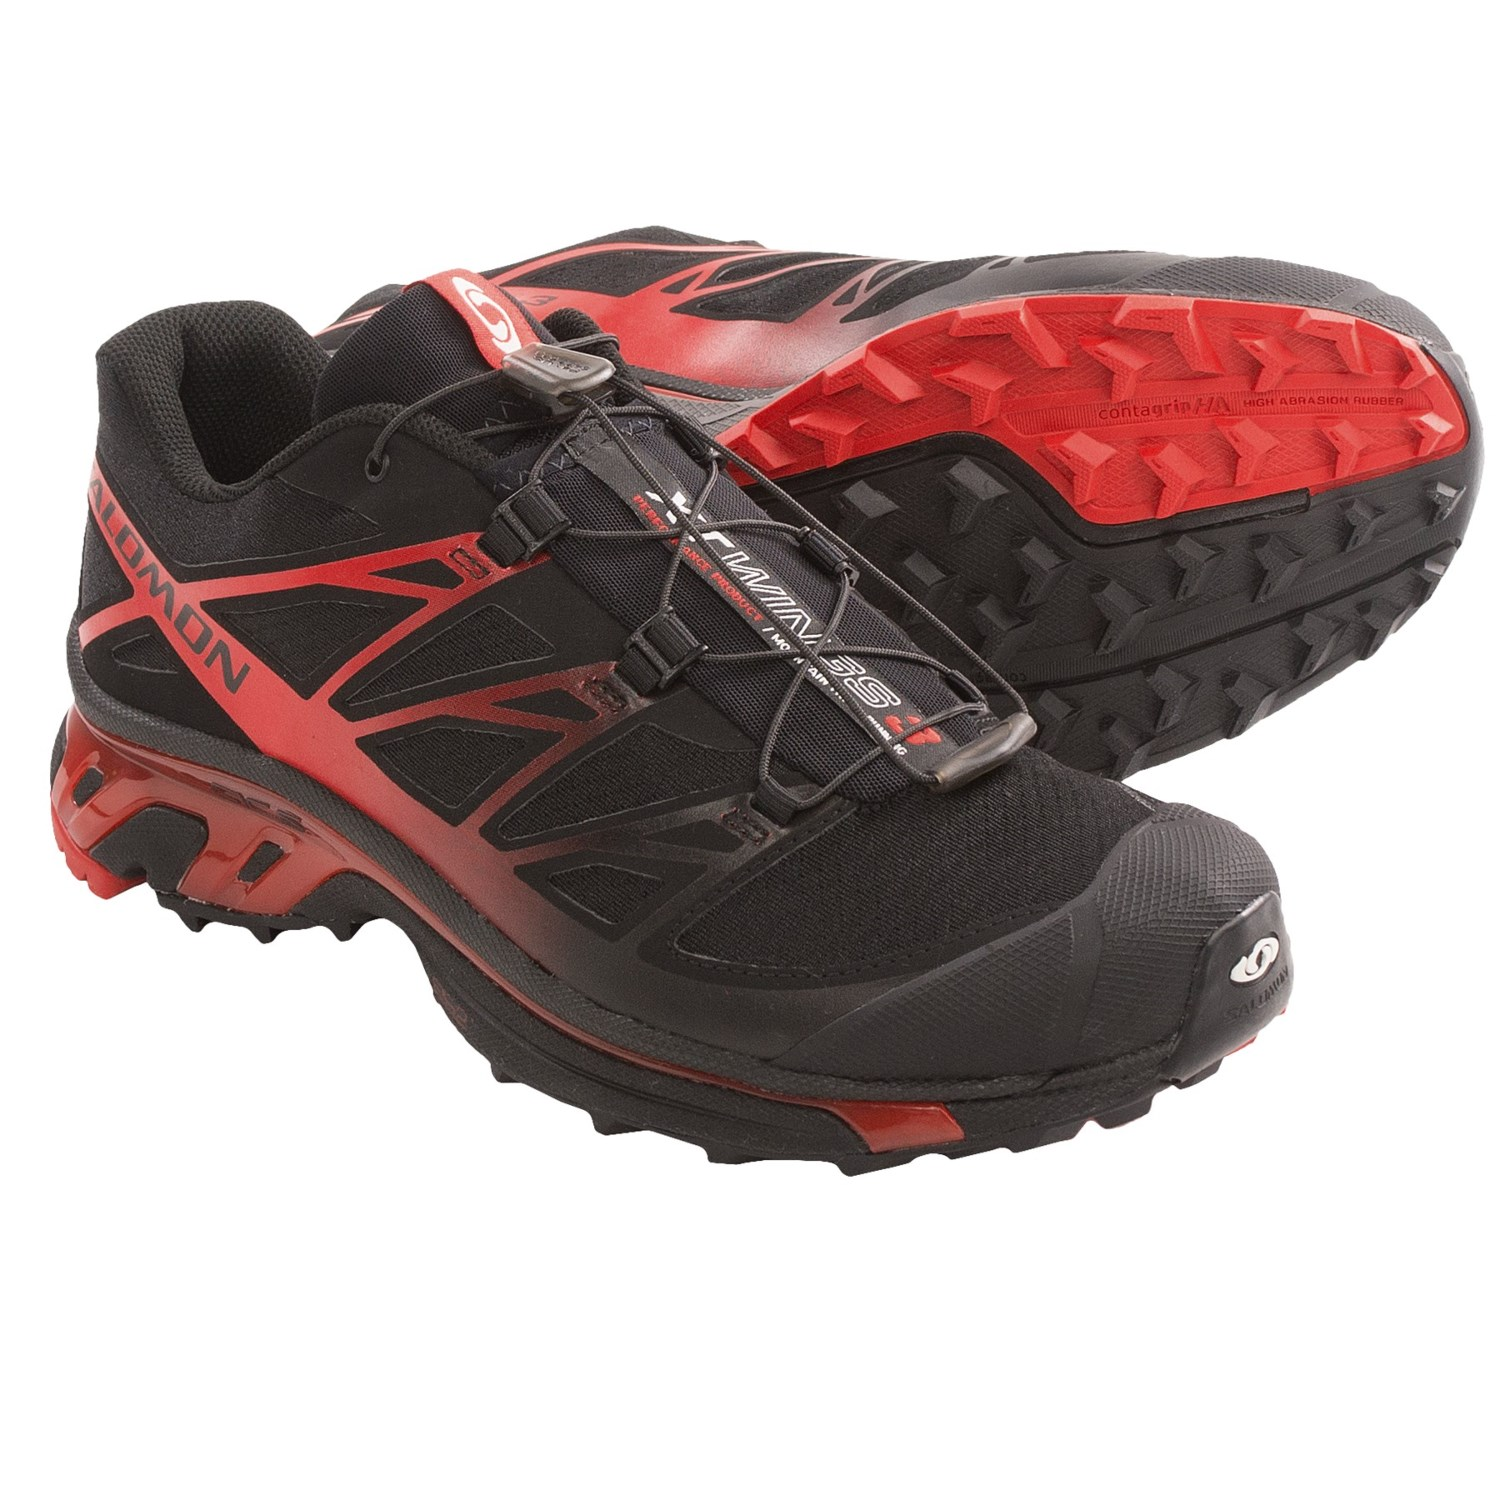 gear scarpa this patrol any i overall for shoes still of feel test very most men comforter the during comfortable has best encountered trail sole supportive stiffest running but shoe